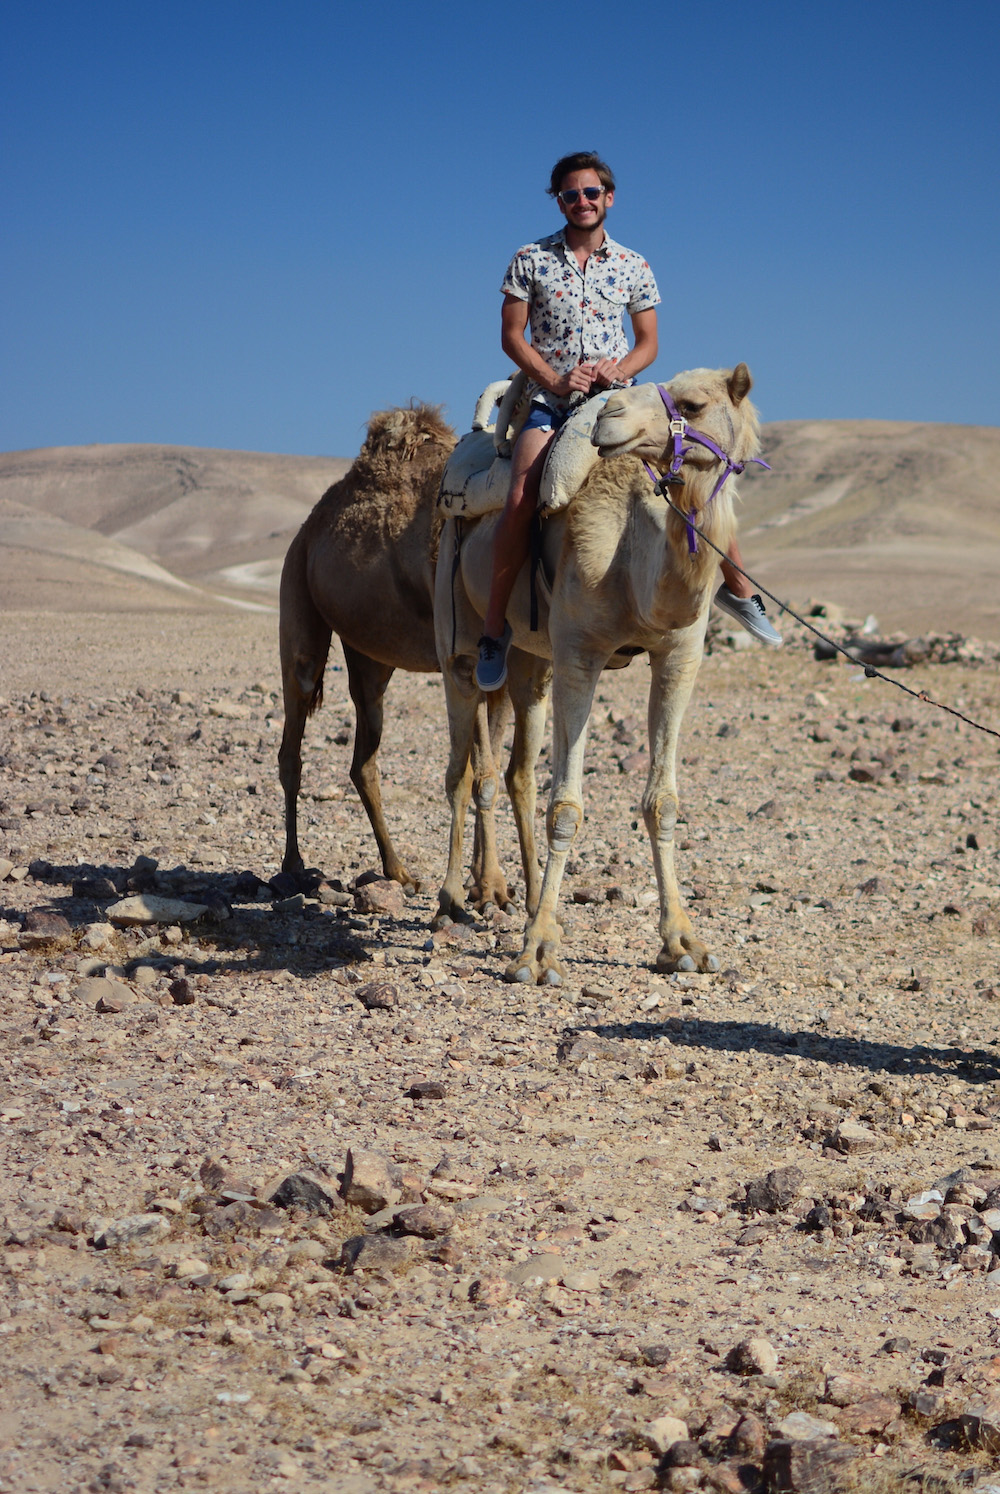 Robert Schrader on a camel in Judean Desert